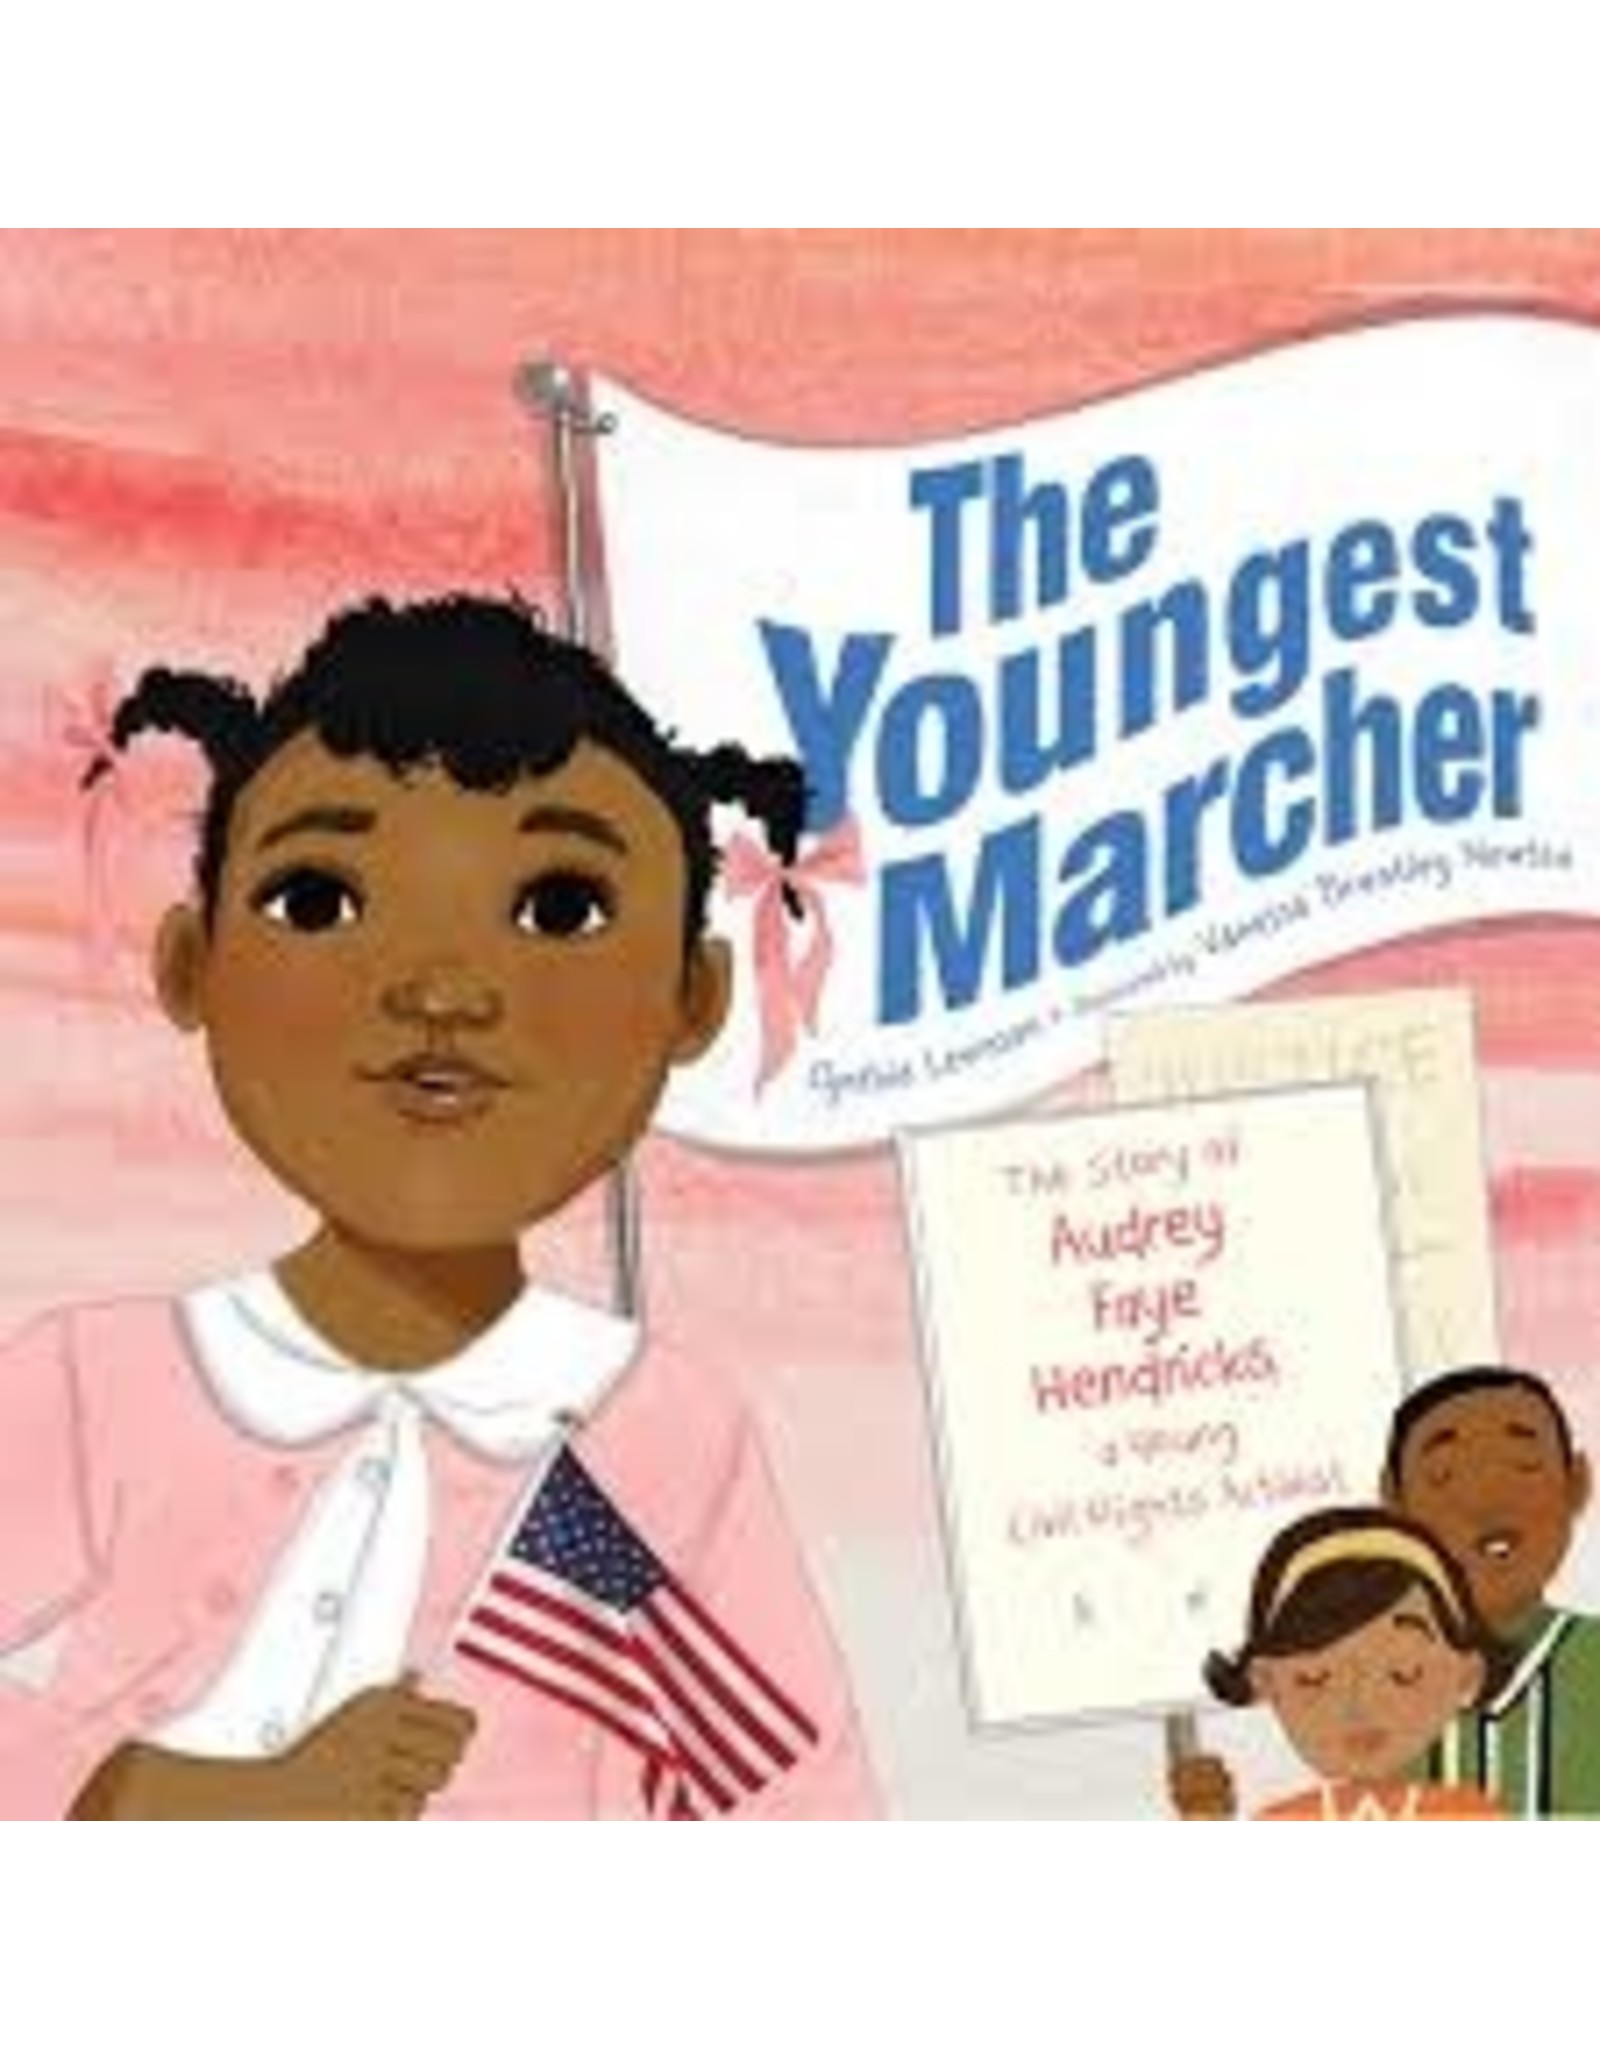 Books The Youngest Marcher: The Story of Faye Hendricks a young Civil Rights Activist  by Cynthia Levinson (DWS)